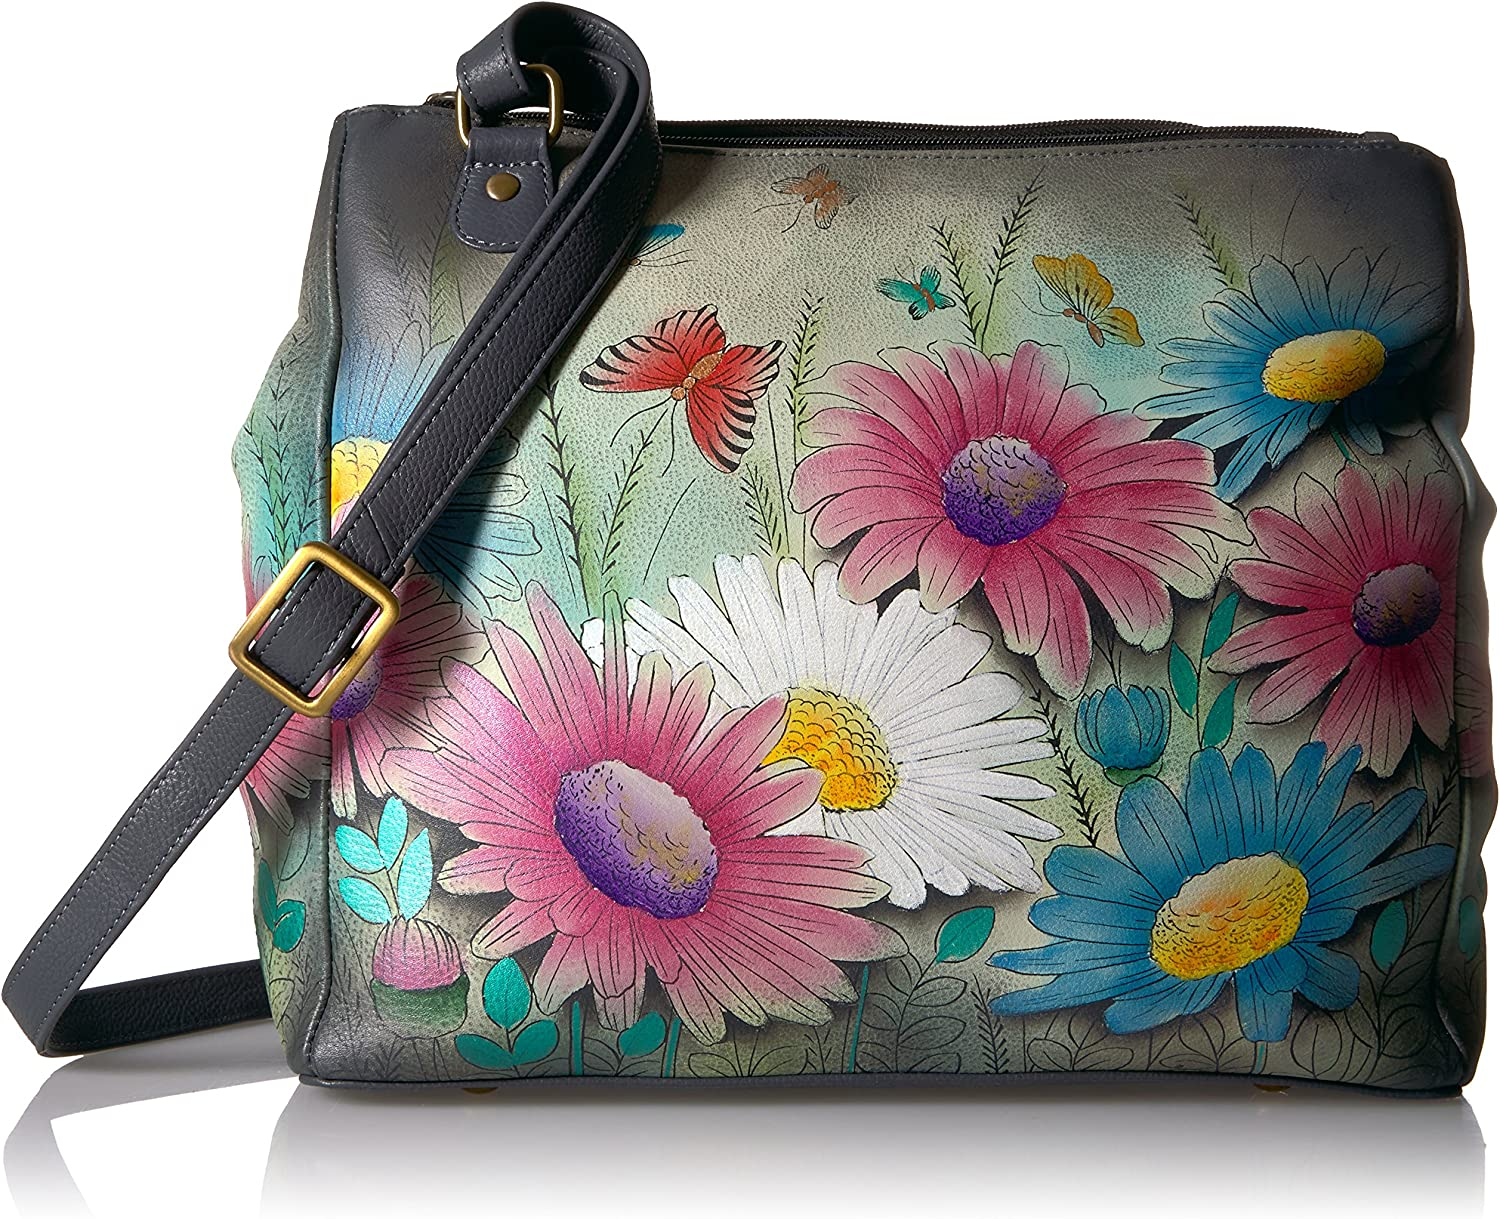 Anna by Anuschka Women s Genuine Leather Large Multi-Compartment Tote Bag Hand Painted Original Artwork Dancing Dragonflies